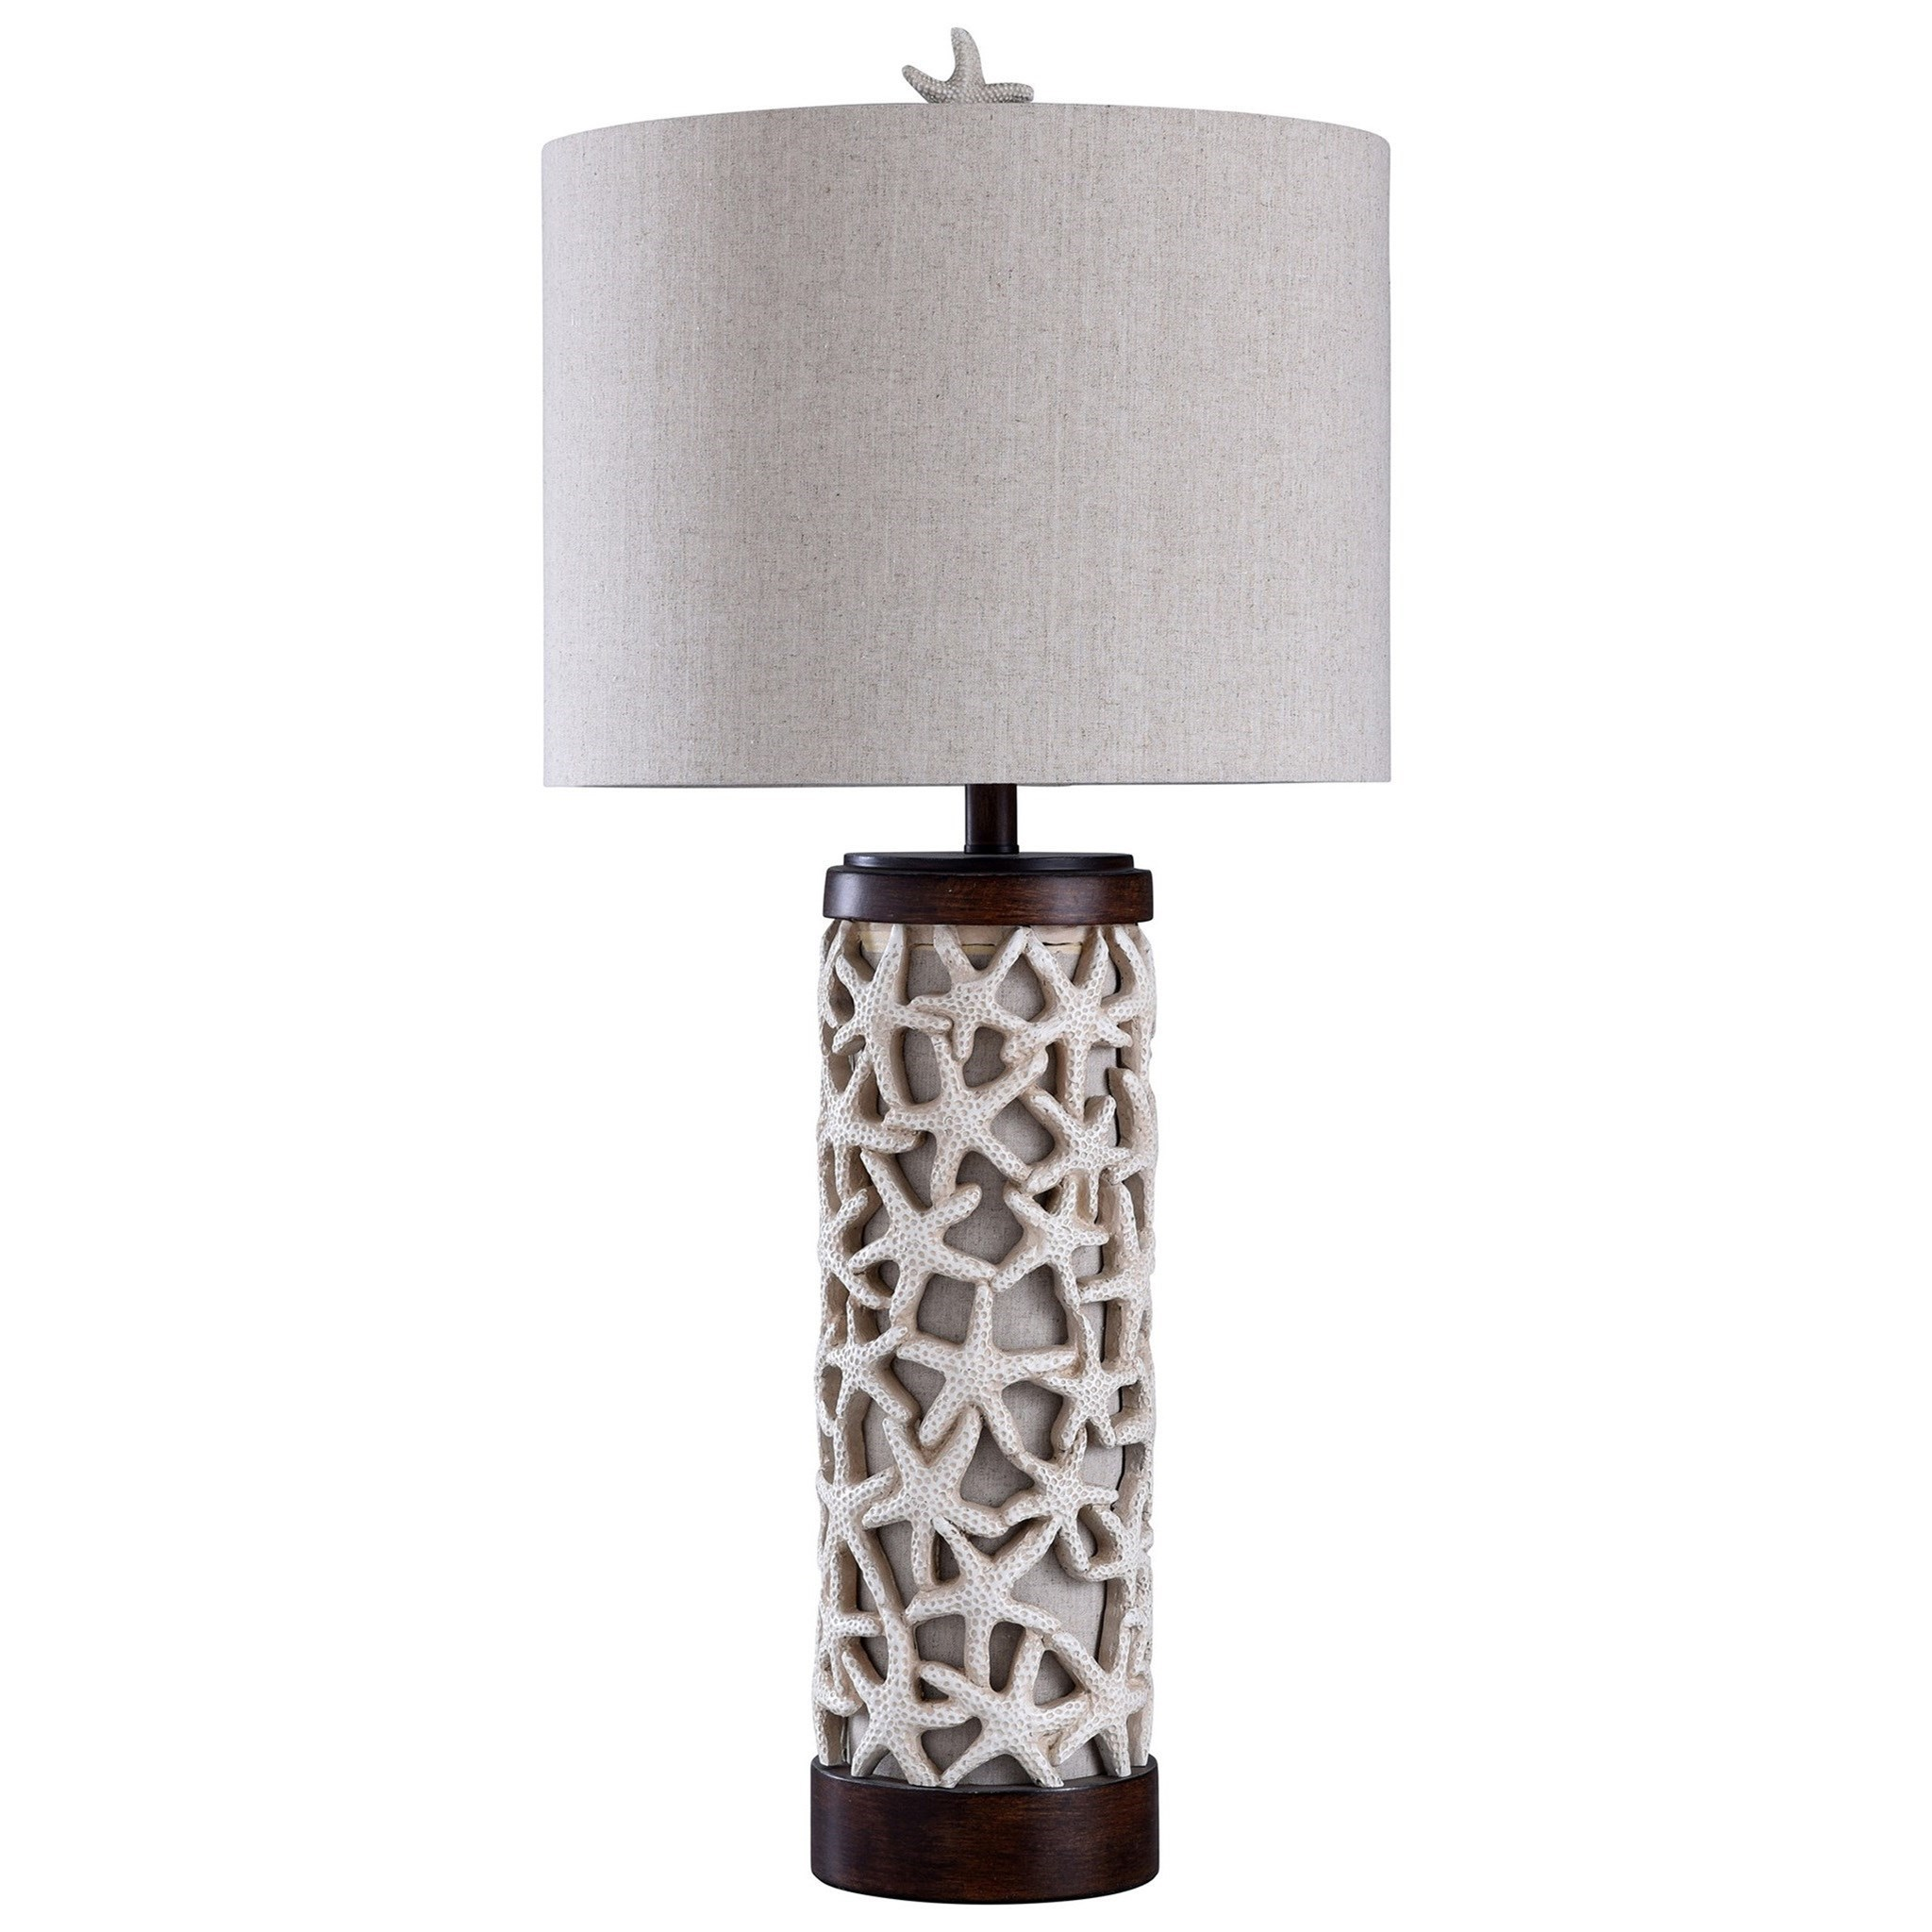 Lamps Sand Shell Lamp by StyleCraft at Dream Home Interiors